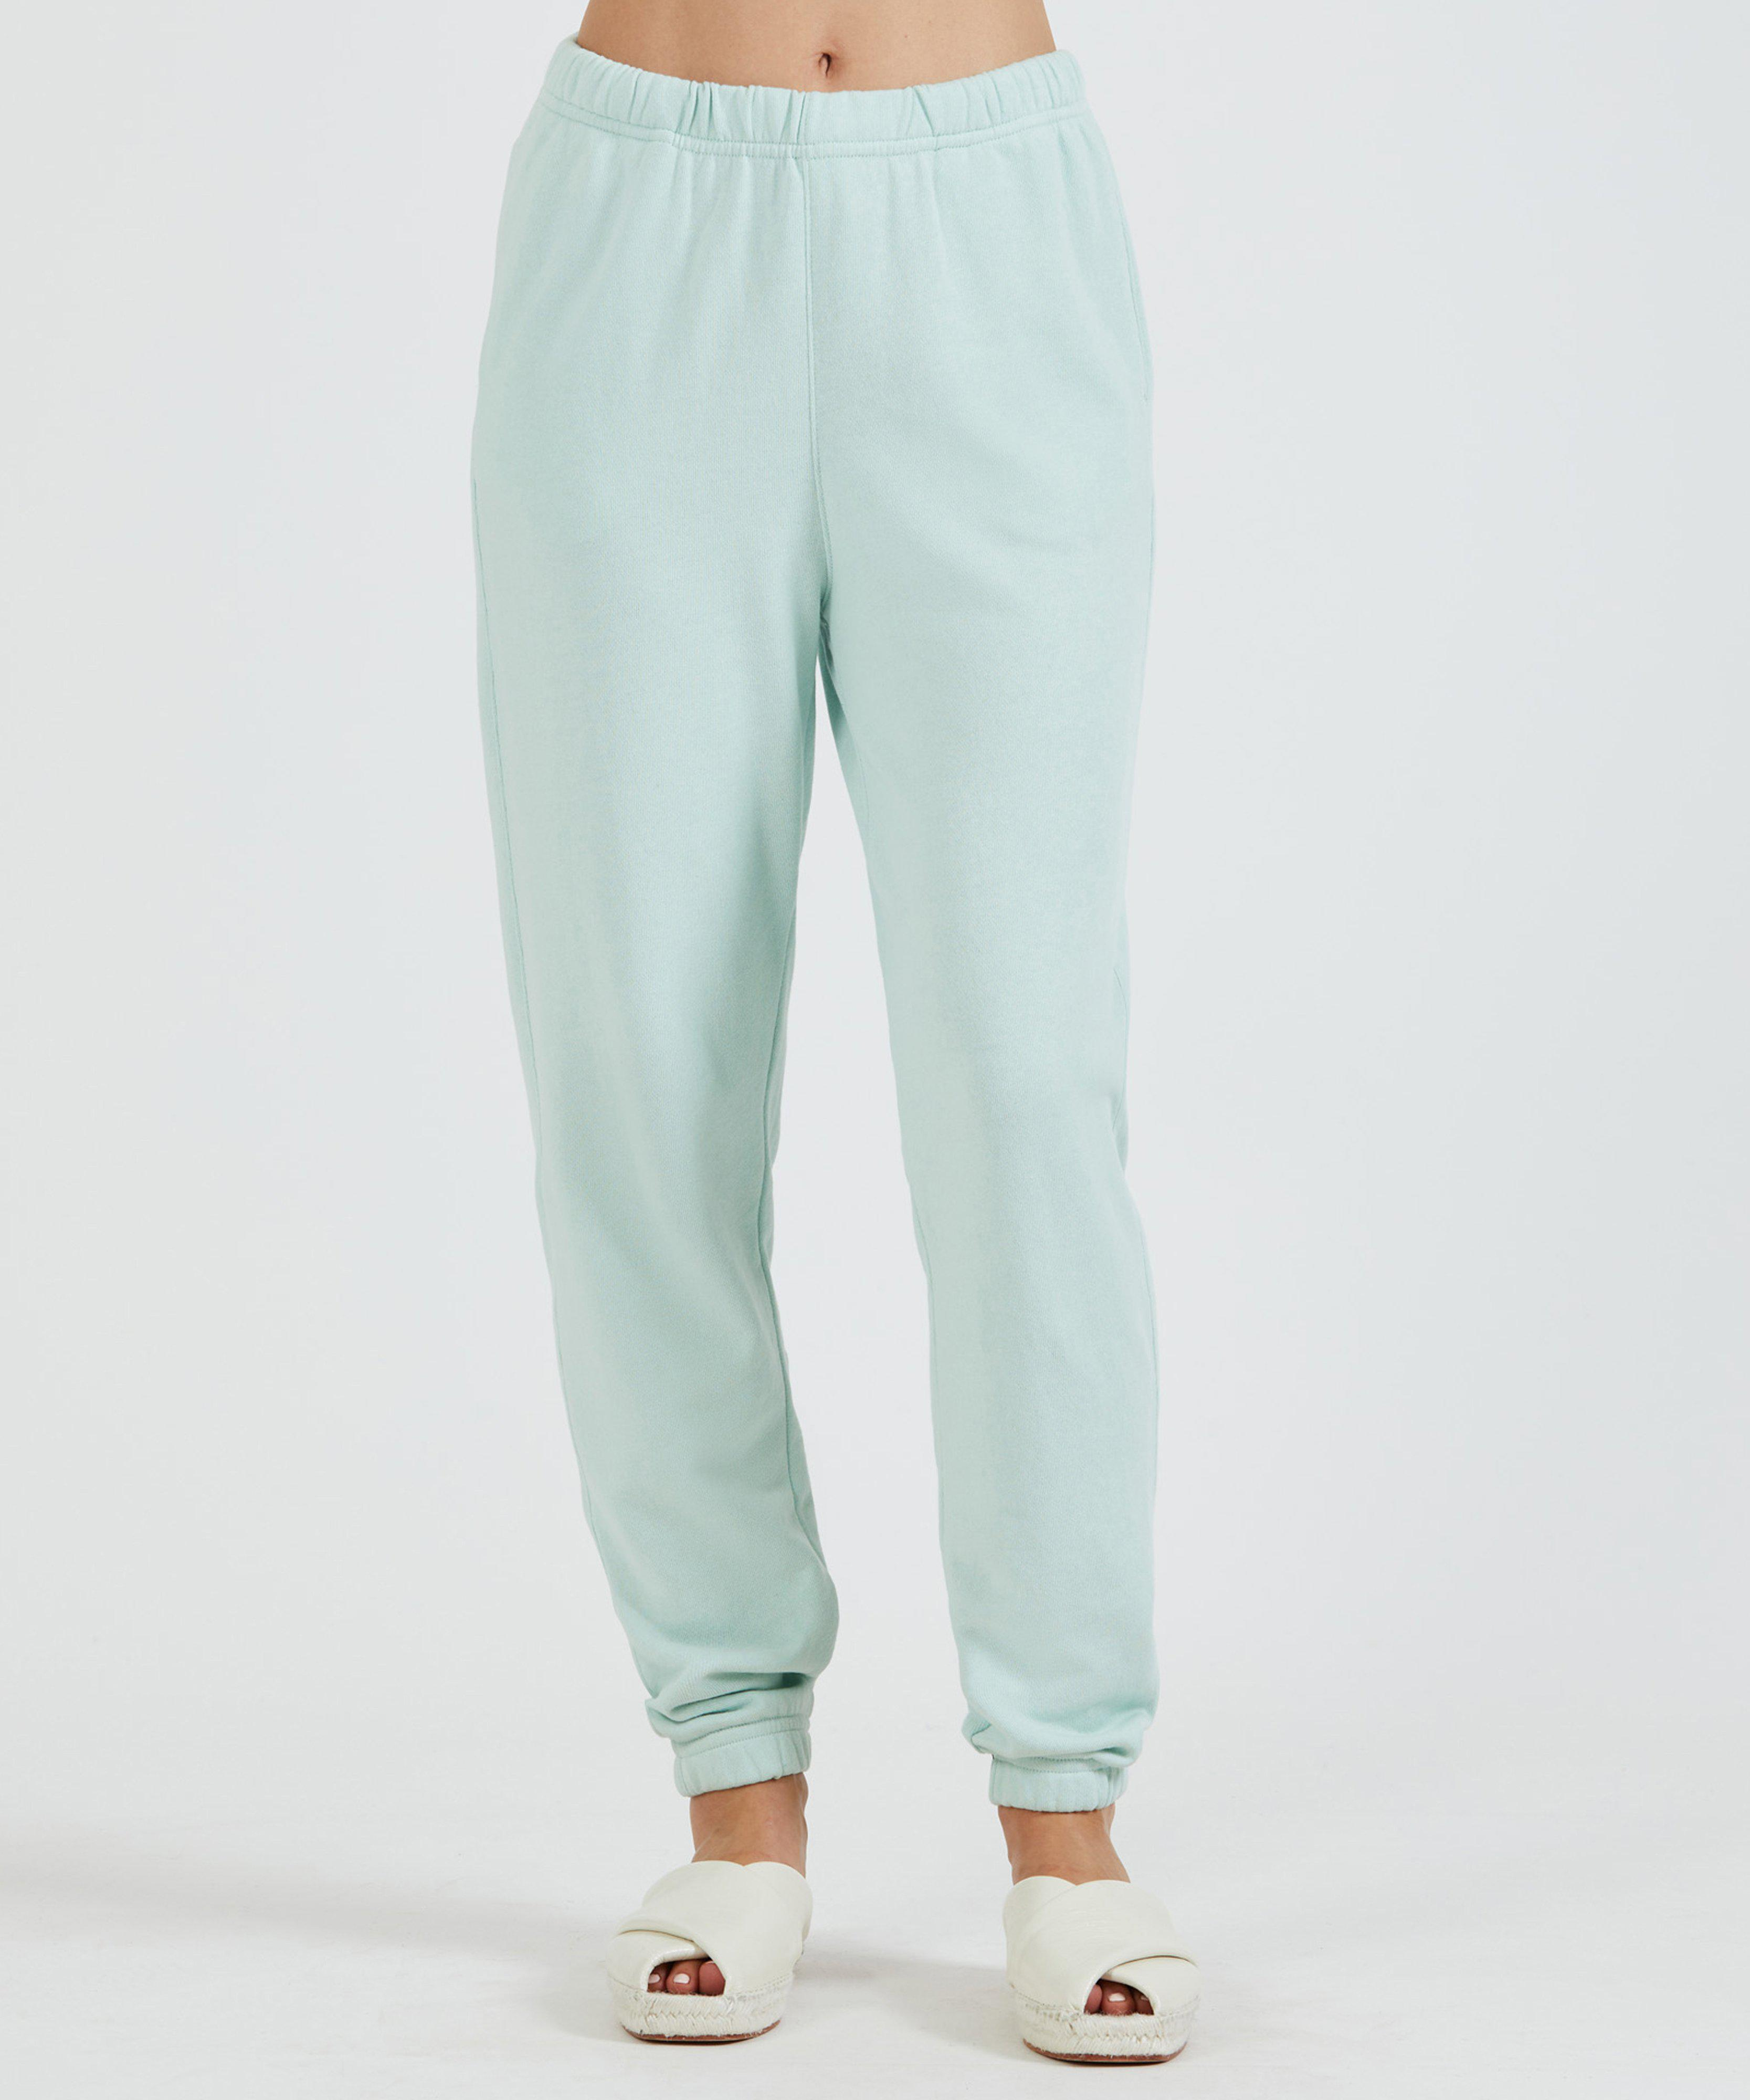 French Terry Pull-On Pant - Mint